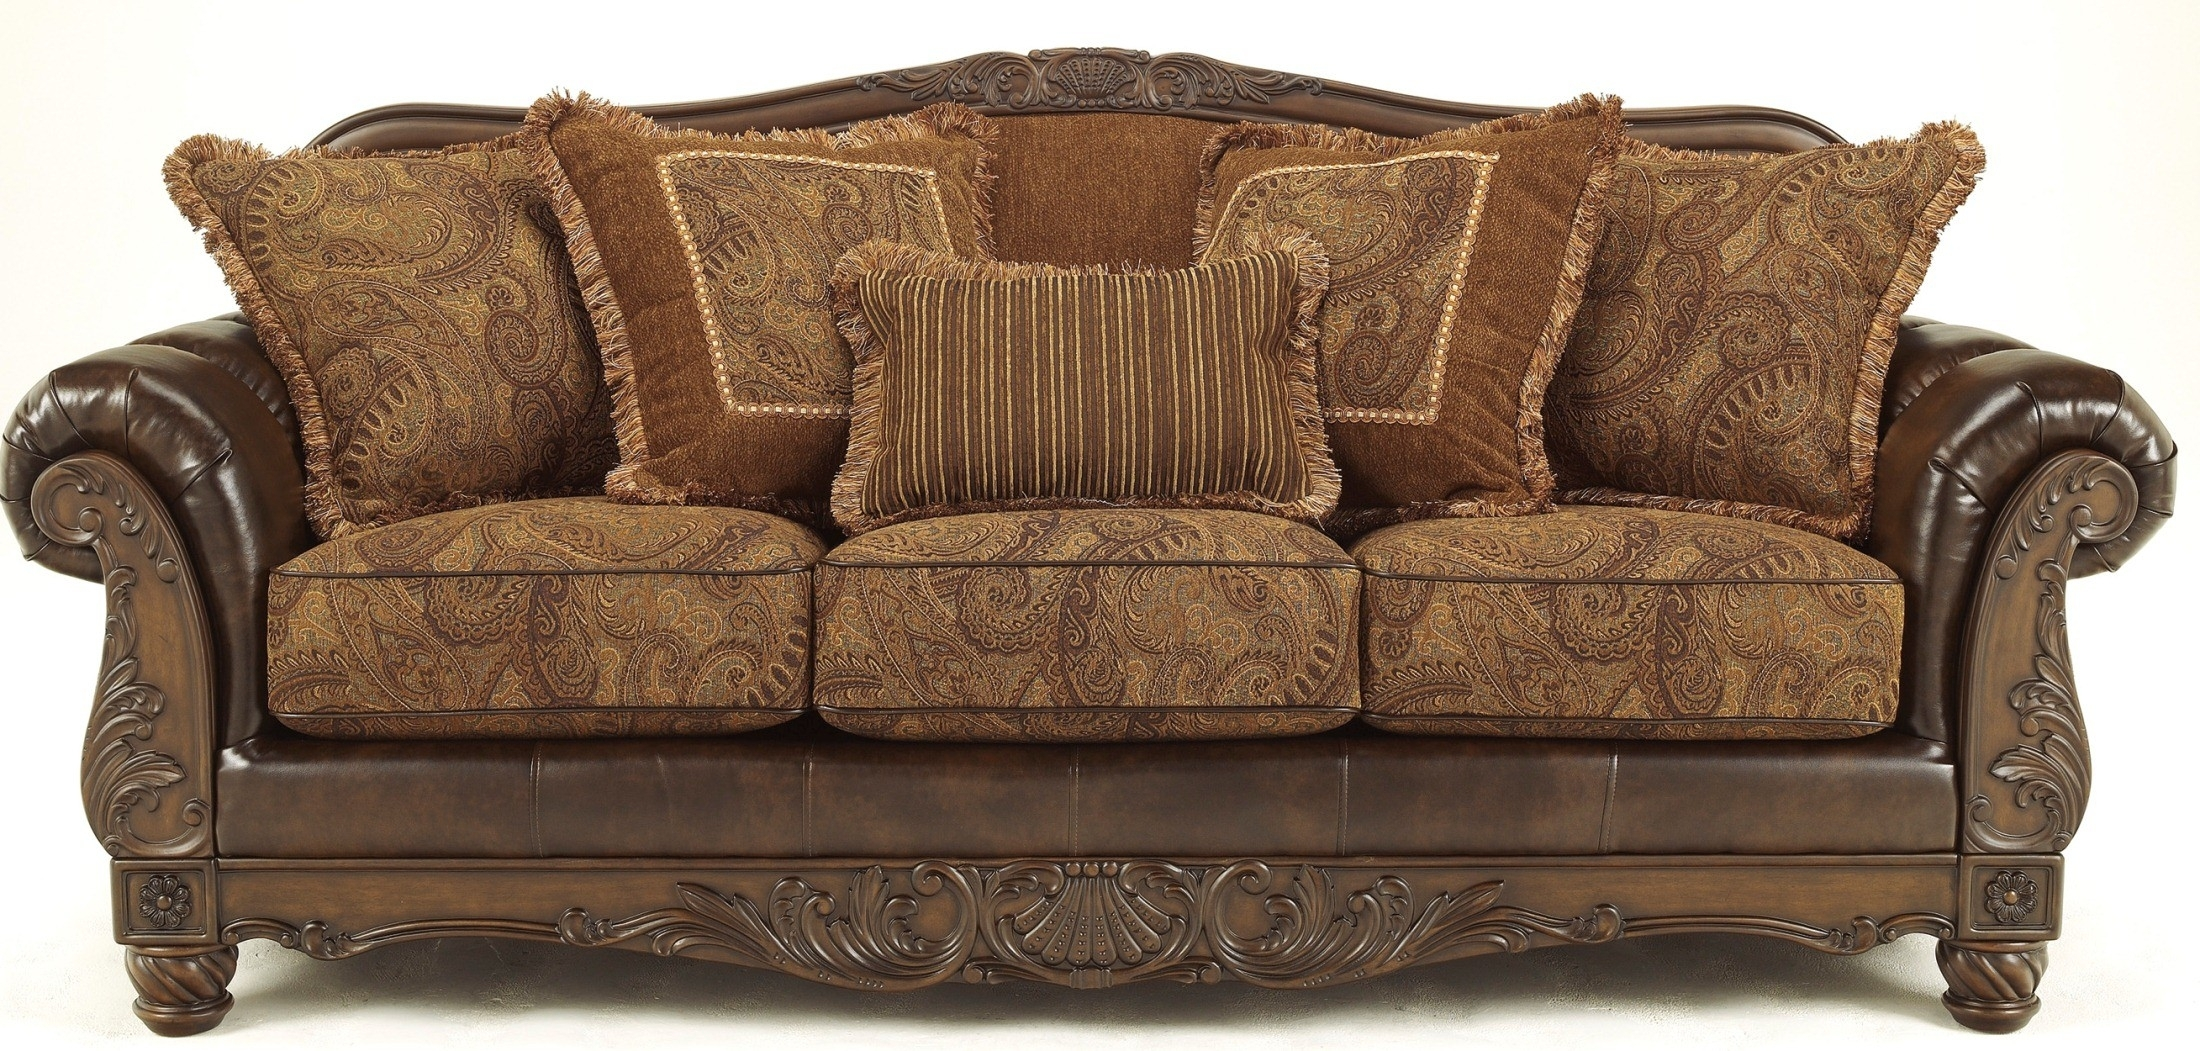 Fresco Durablend Antique Sofa From Ashley (6310038) | Coleman Furniture Throughout Antique Sofas (Image 5 of 10)